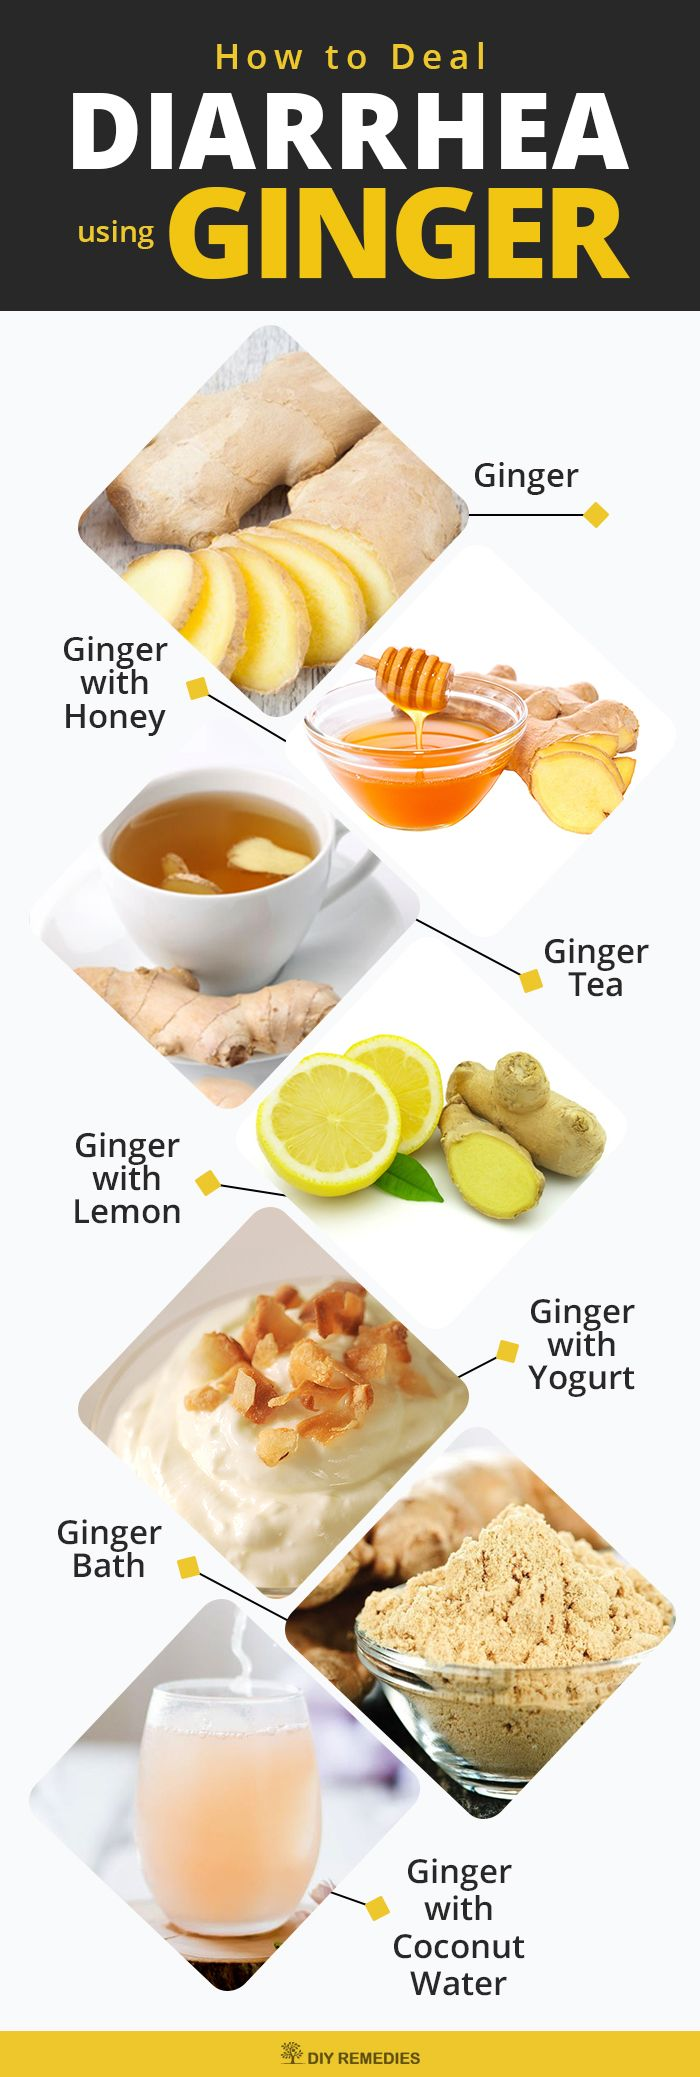 How to Deal Diarrhea using Ginger    Ginger not only effectively used to treat diarrhea but also helps you to deal with its symptoms like upset stomach, bloating and nausea.    #DIYRemedies #Diarrhea